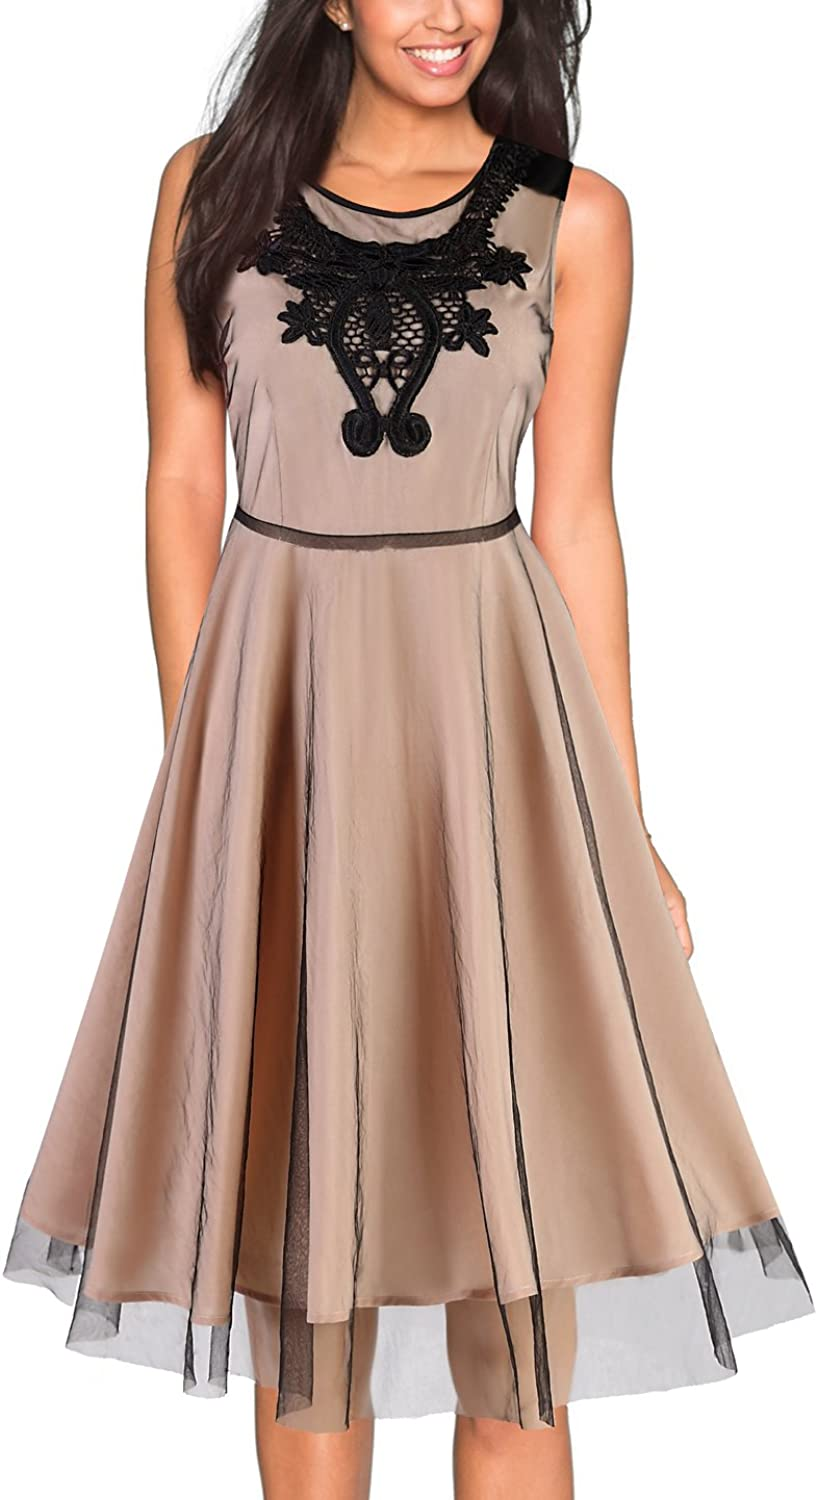 EvelynNY Women's Illusion Floral Lace Elegant Party Casual Bridesmaid Prom Dress